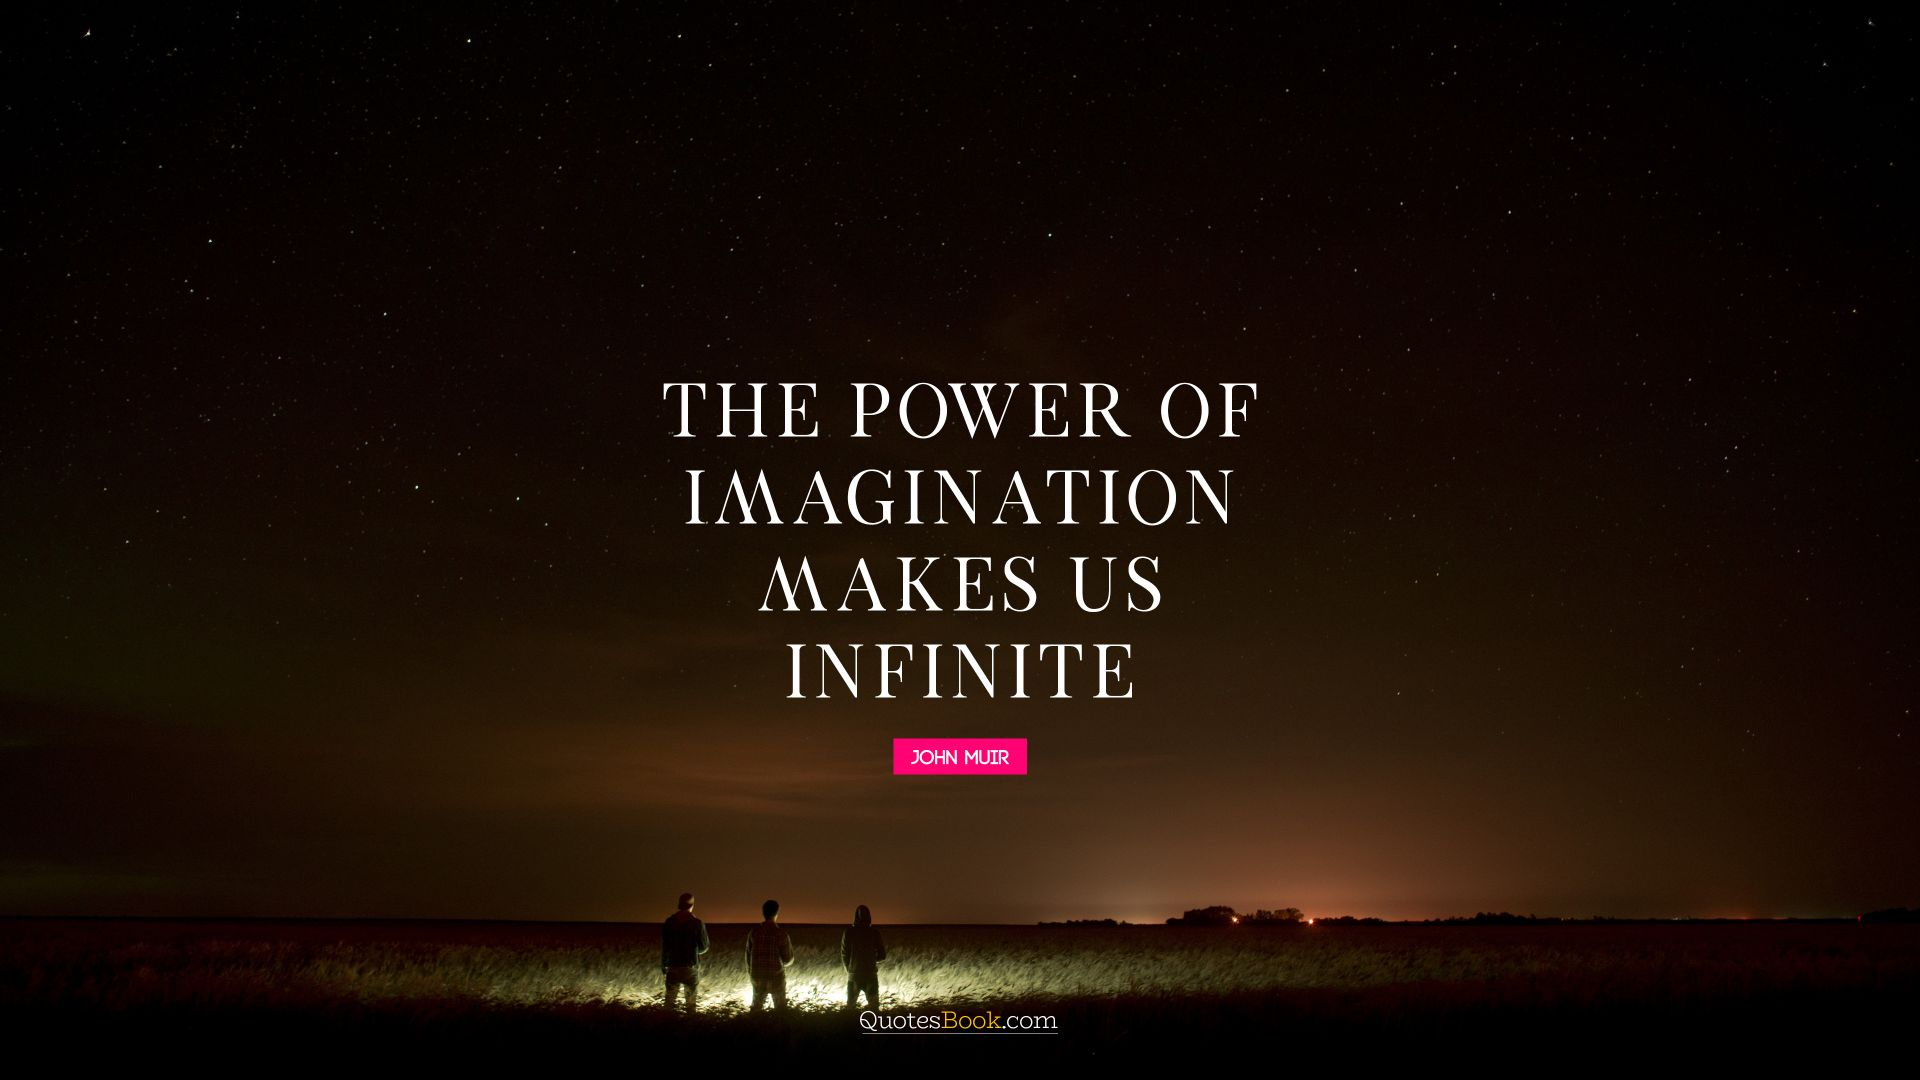 The power of imagination makes us infinite. - Quote by John Muir